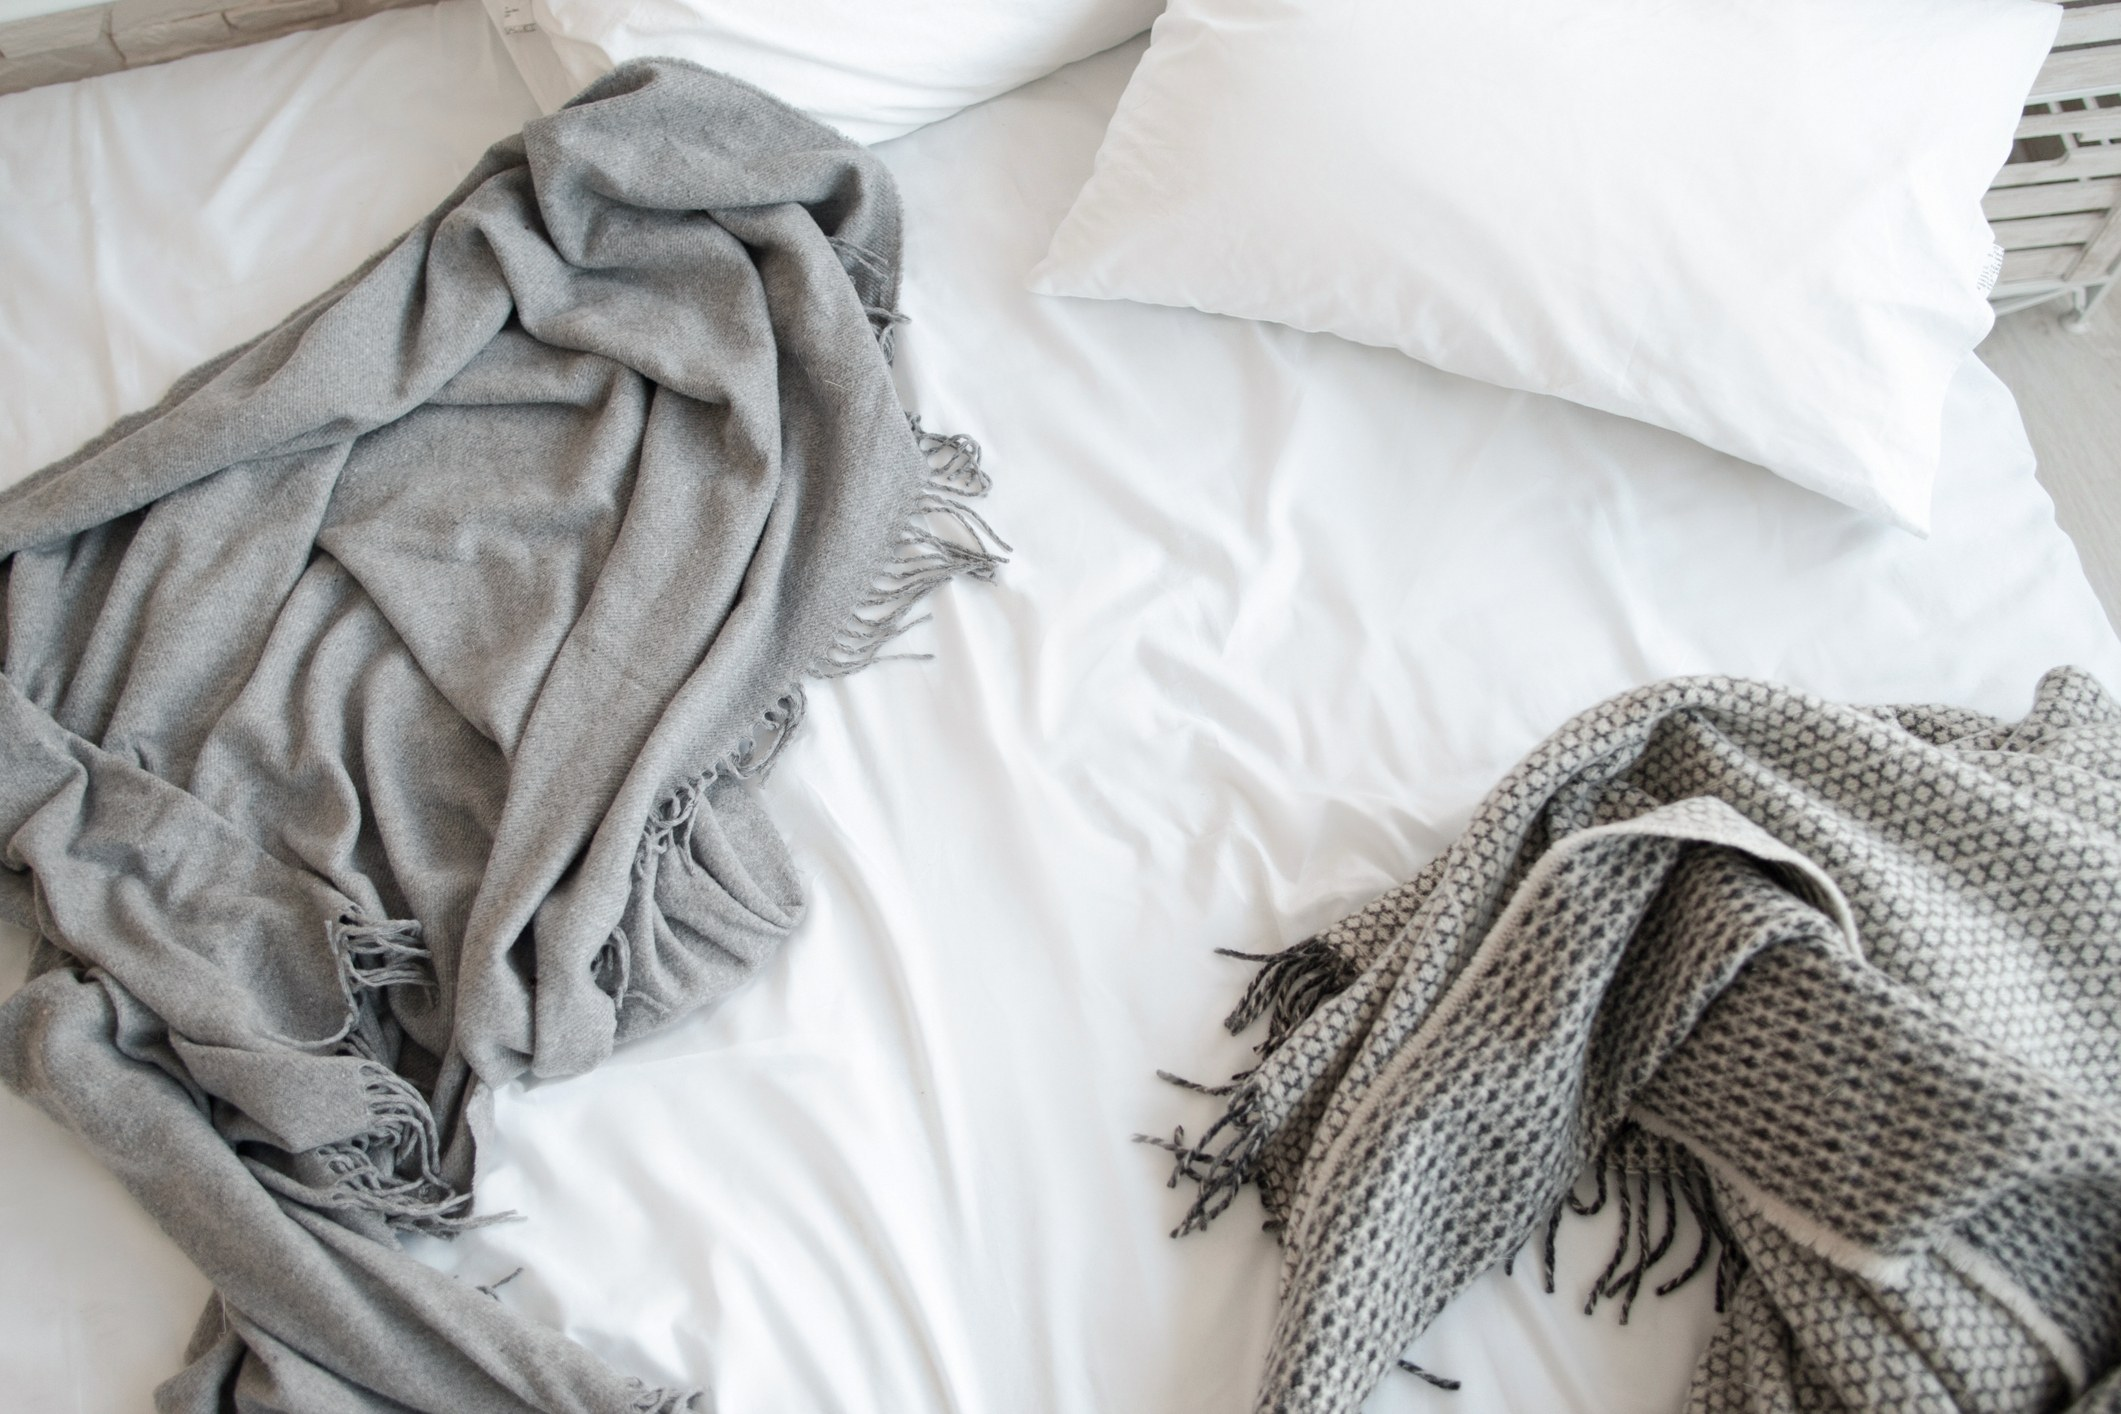 Unmade bed with blankets